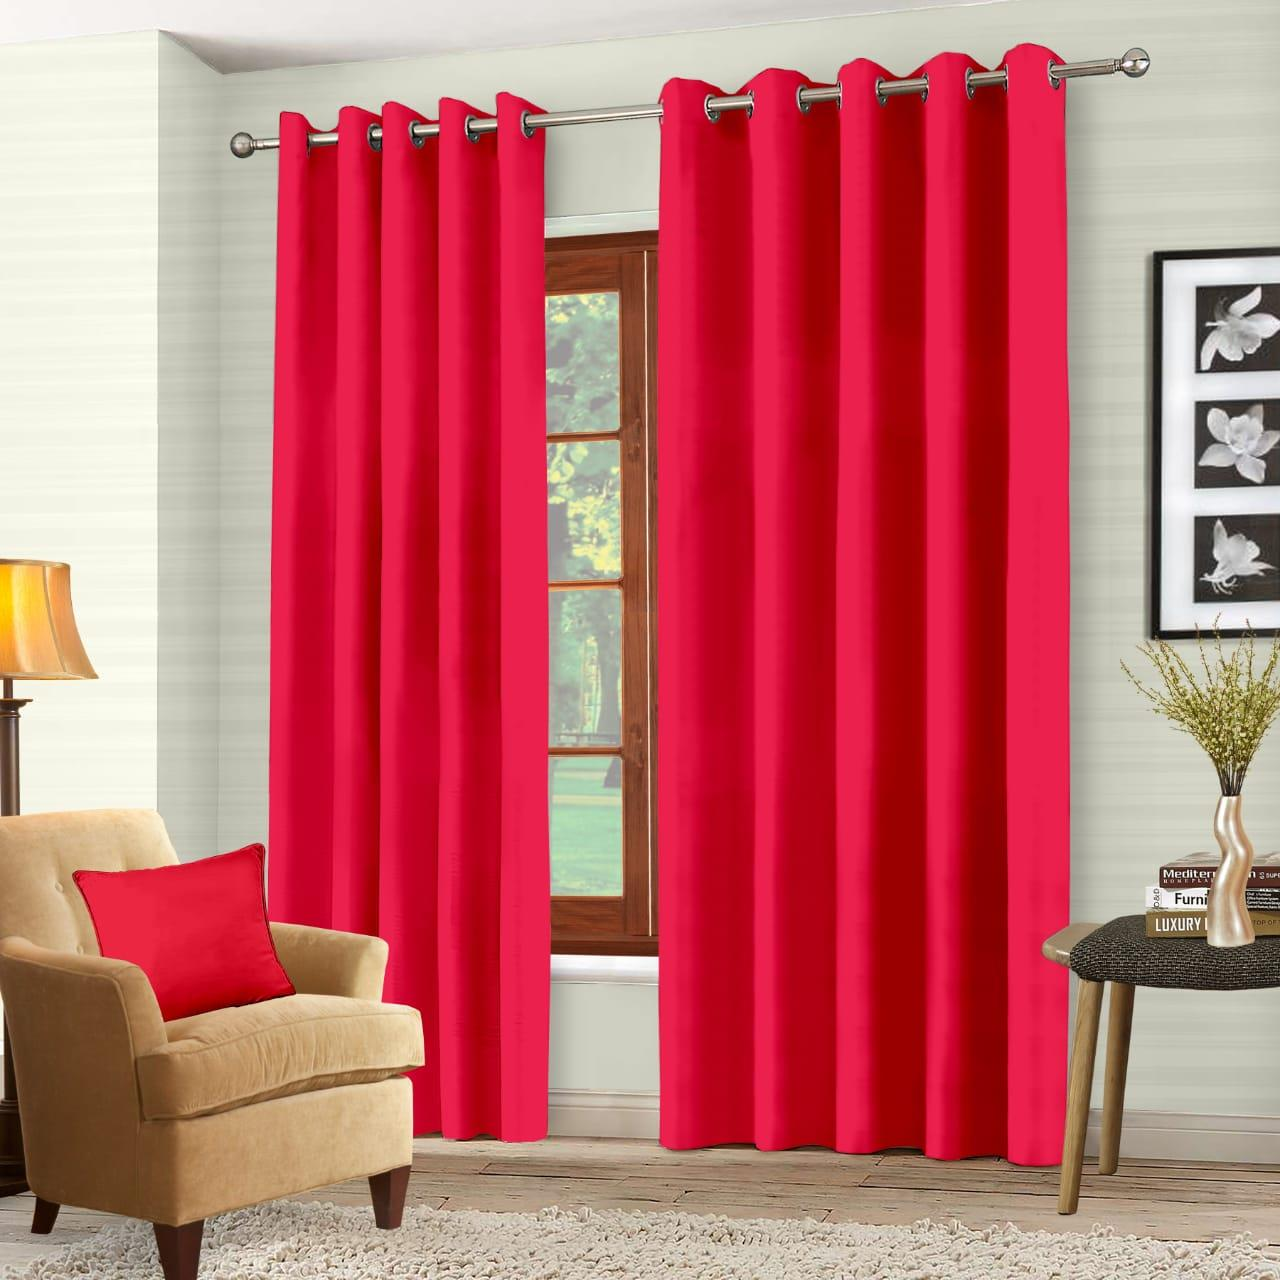 Luxury-Thermal-Blackout-Eyelet-Ring-Top-Curtains-Pair-with-tie-backs thumbnail 33